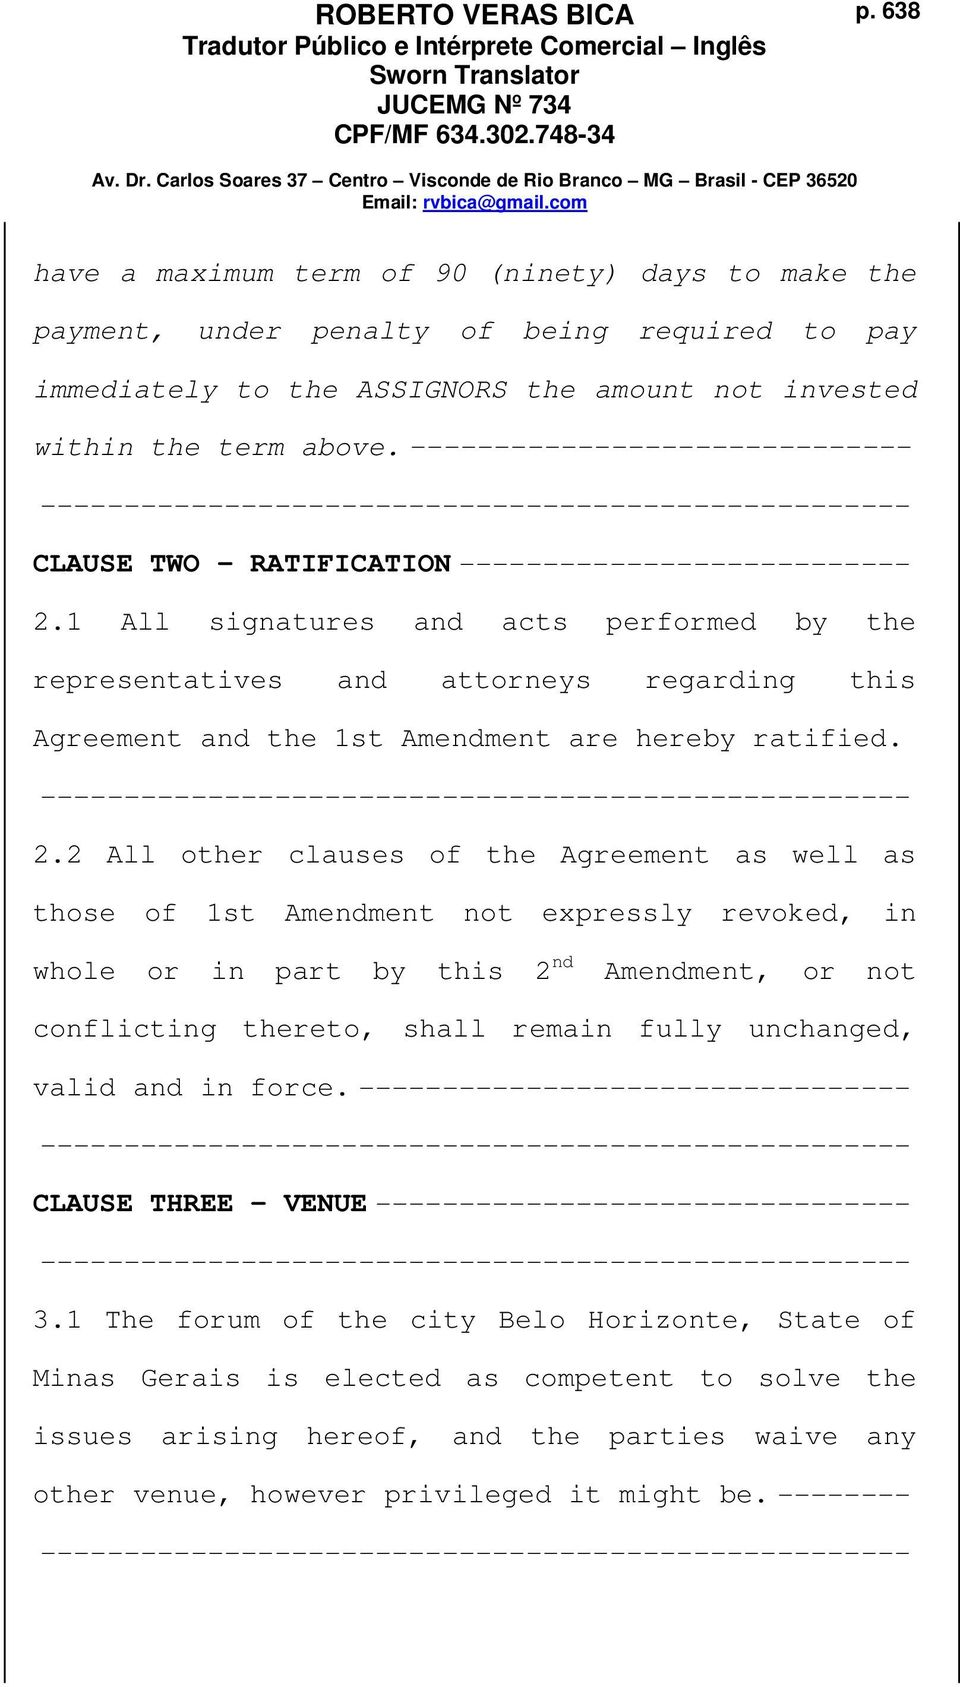 1 All signatures and acts performed by the representatives and attorneys regarding this Agreement and the 1st Amendment are hereby ratified. 2.